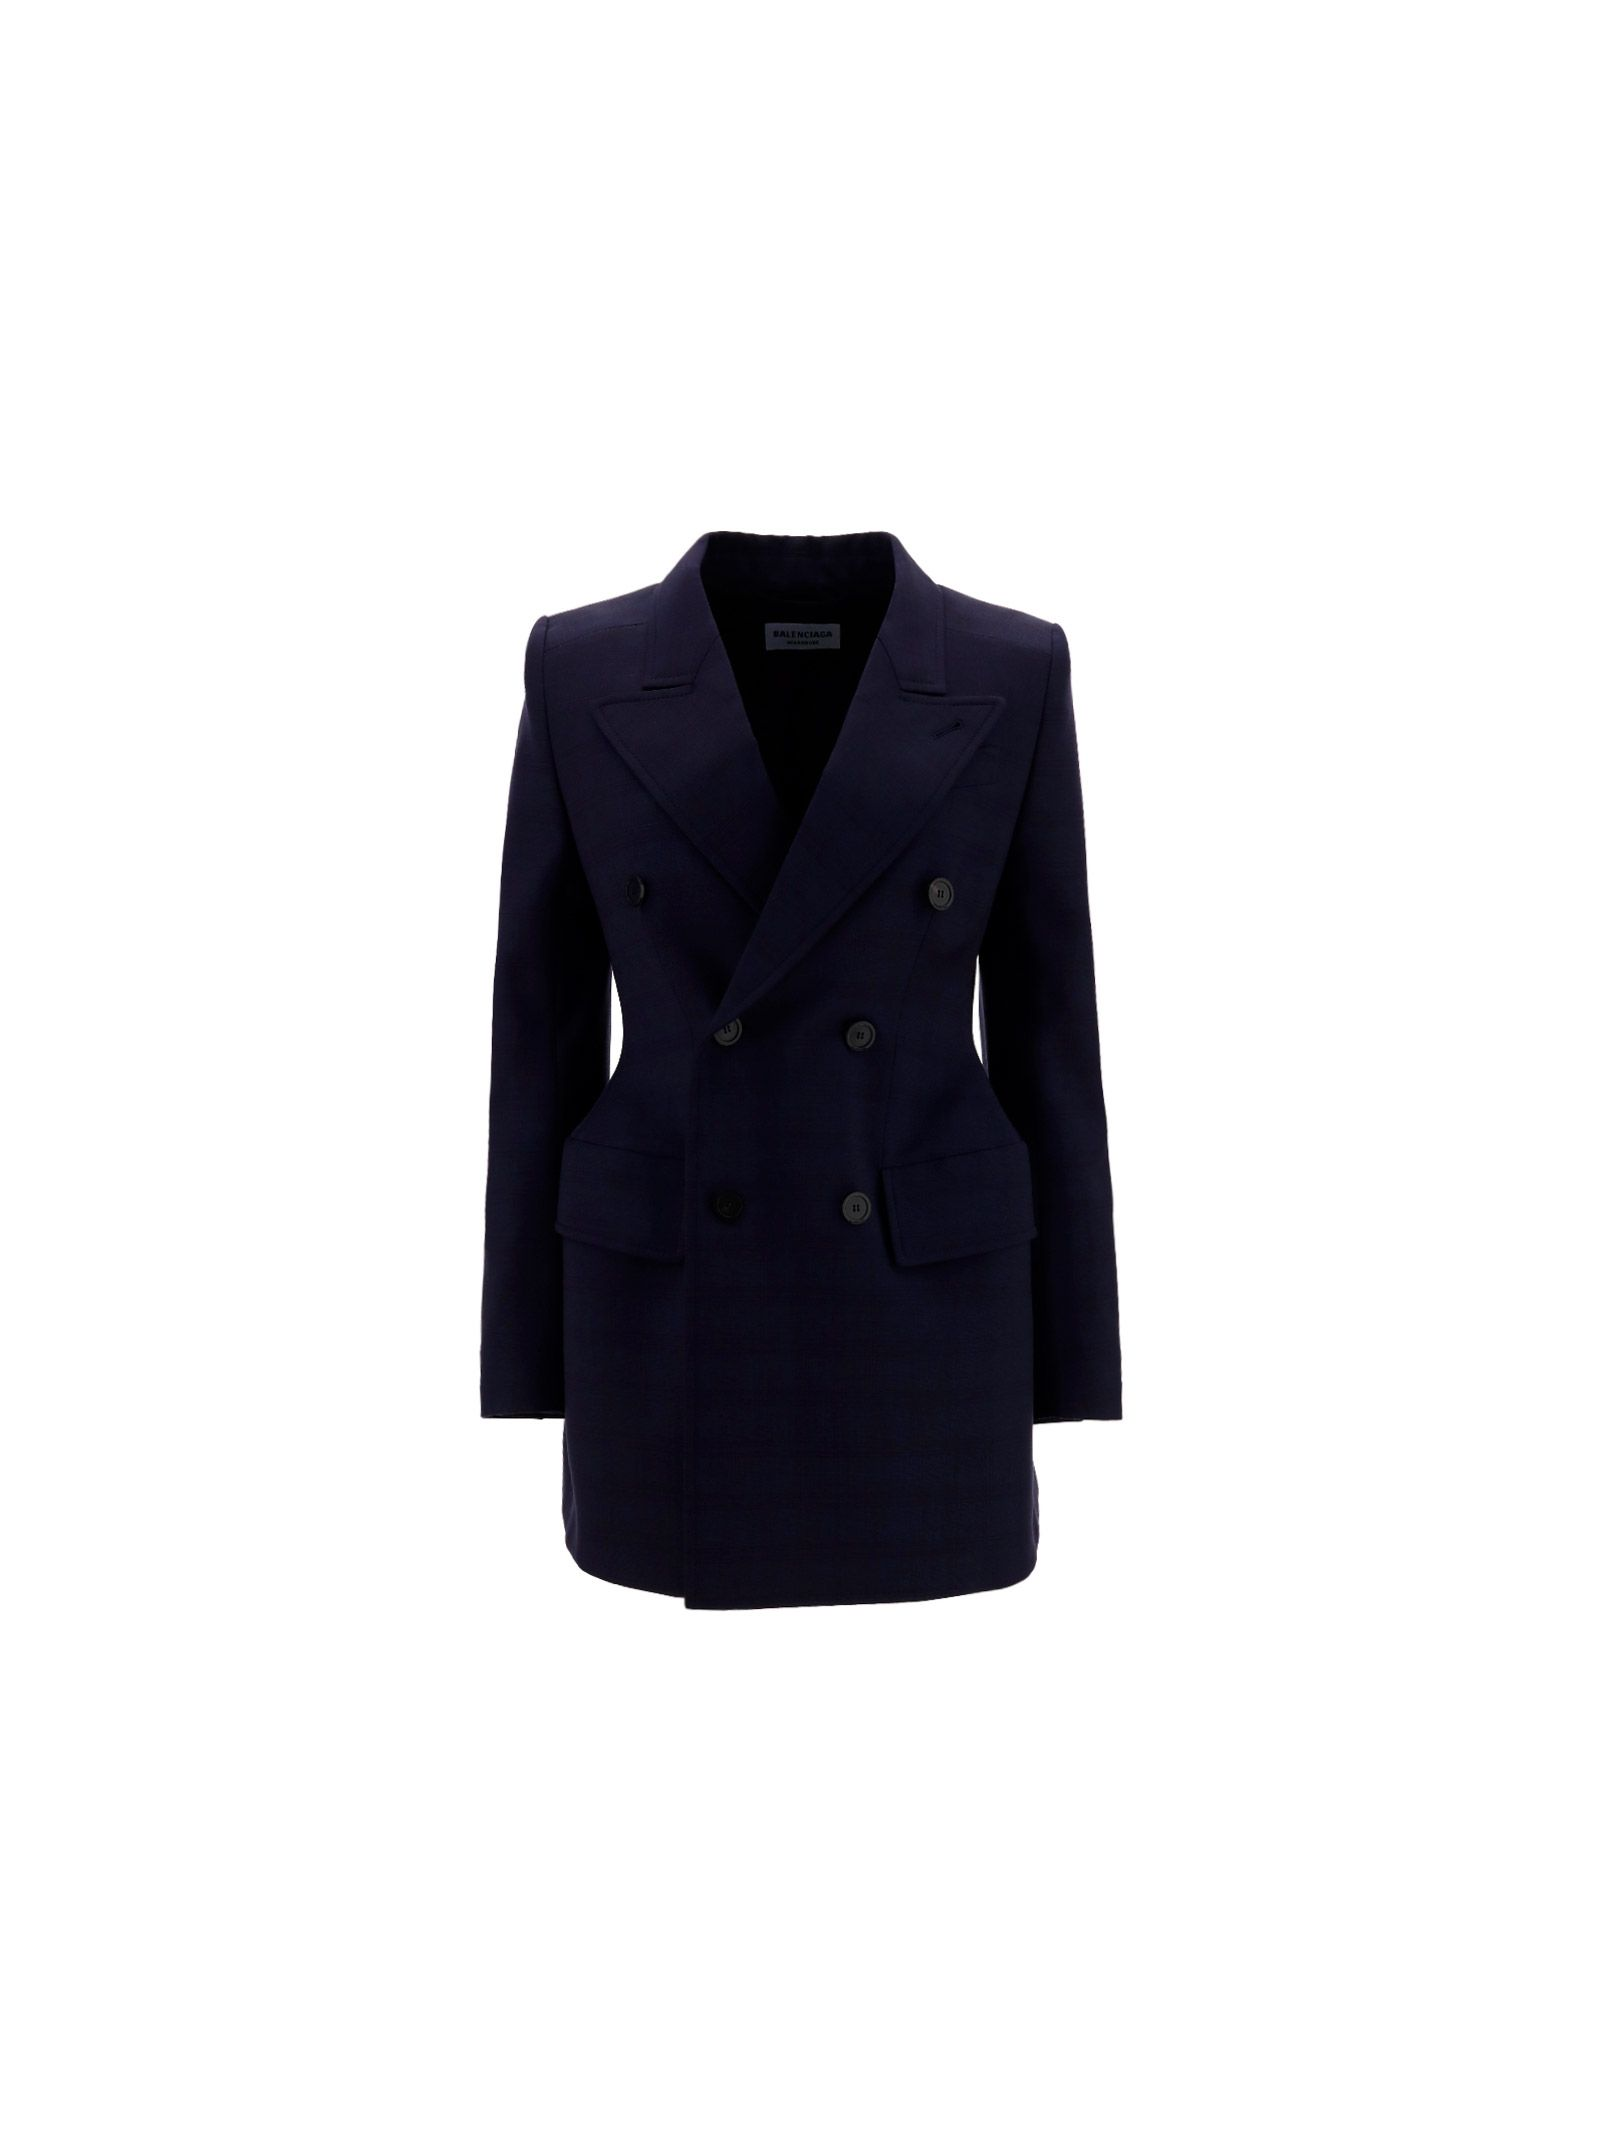 Balenciaga BALENCIAGA WOMEN'S BLUE OTHER MATERIALS BLAZER